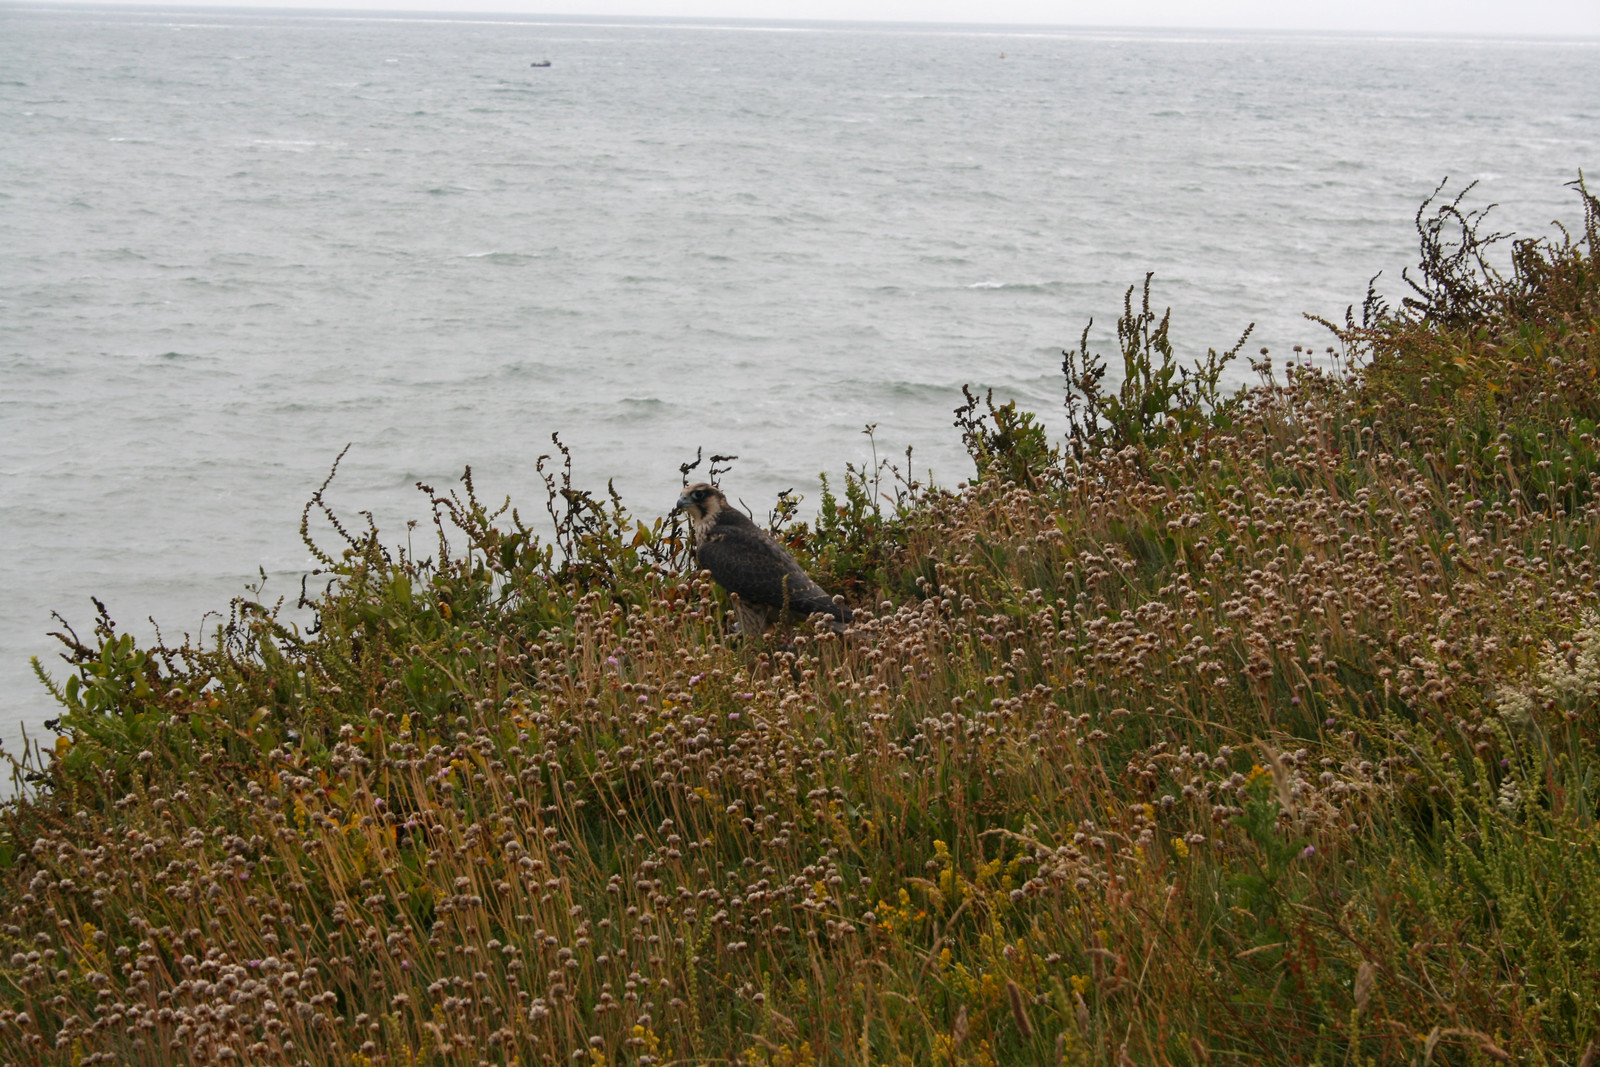 Kestrel on the cliffs near West Bay